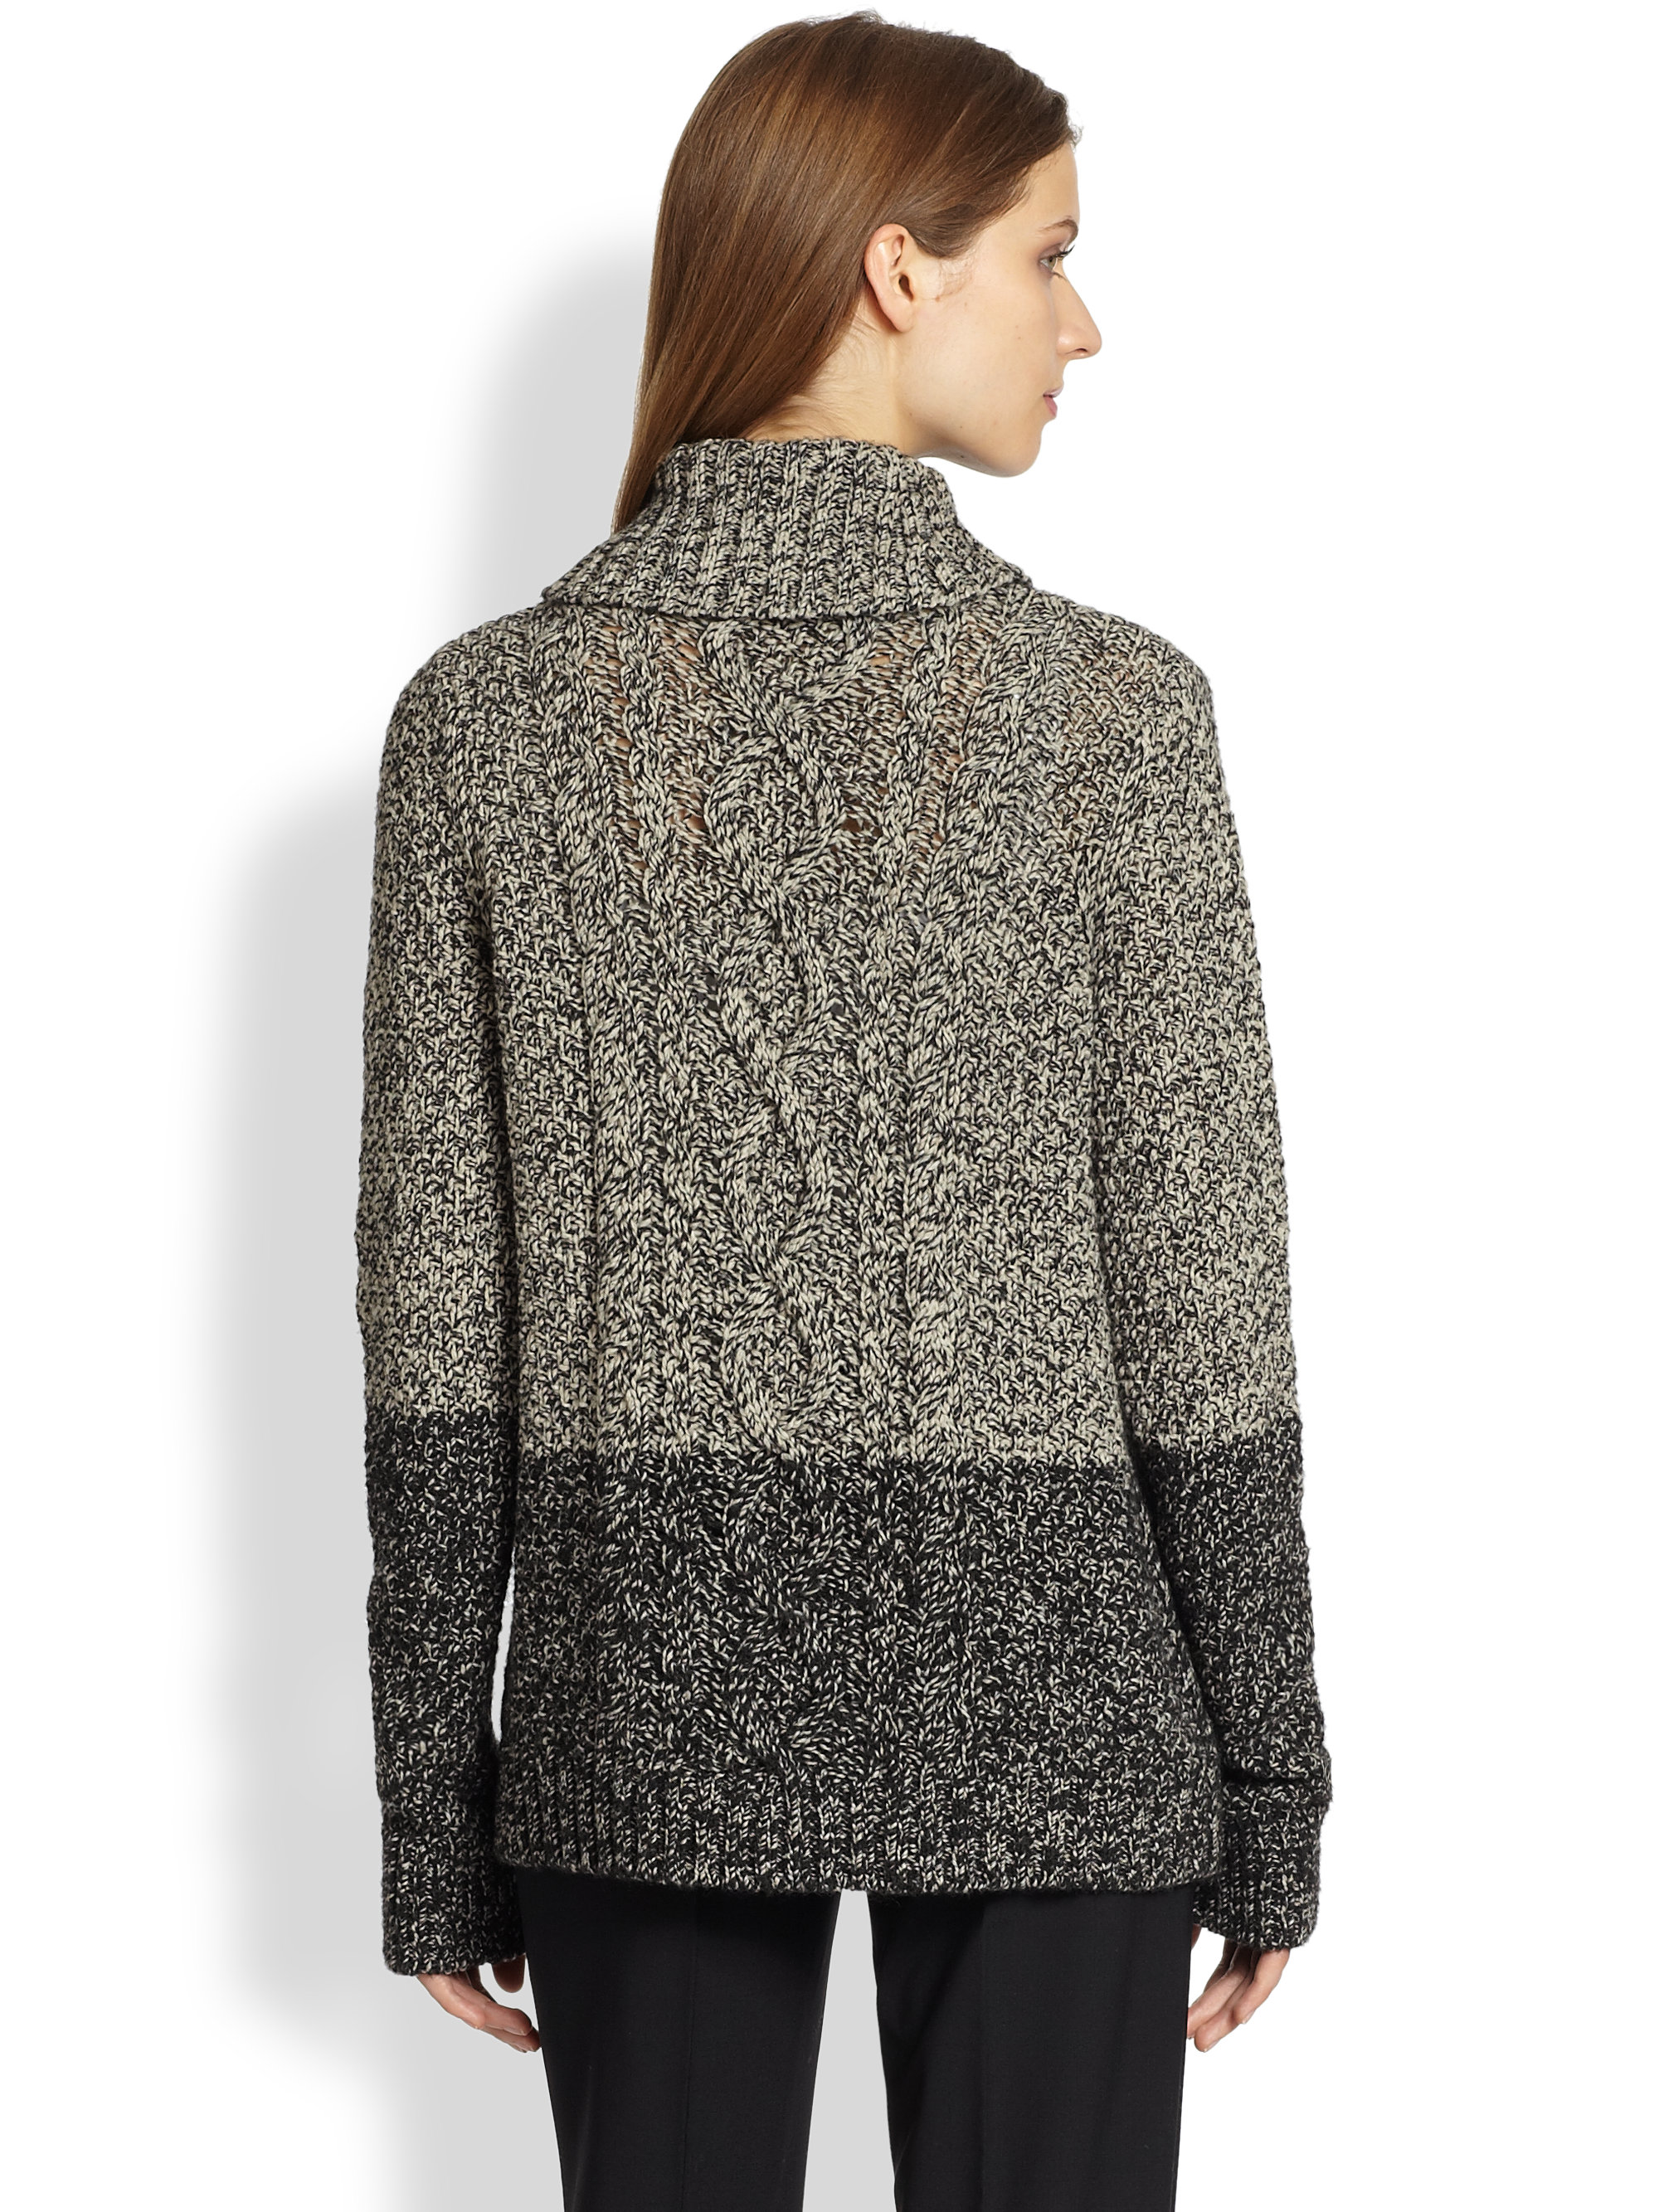 f850aee618 Vince Colorblock Marled Yak Wool Turtleneck Sweater in Gray - Lyst